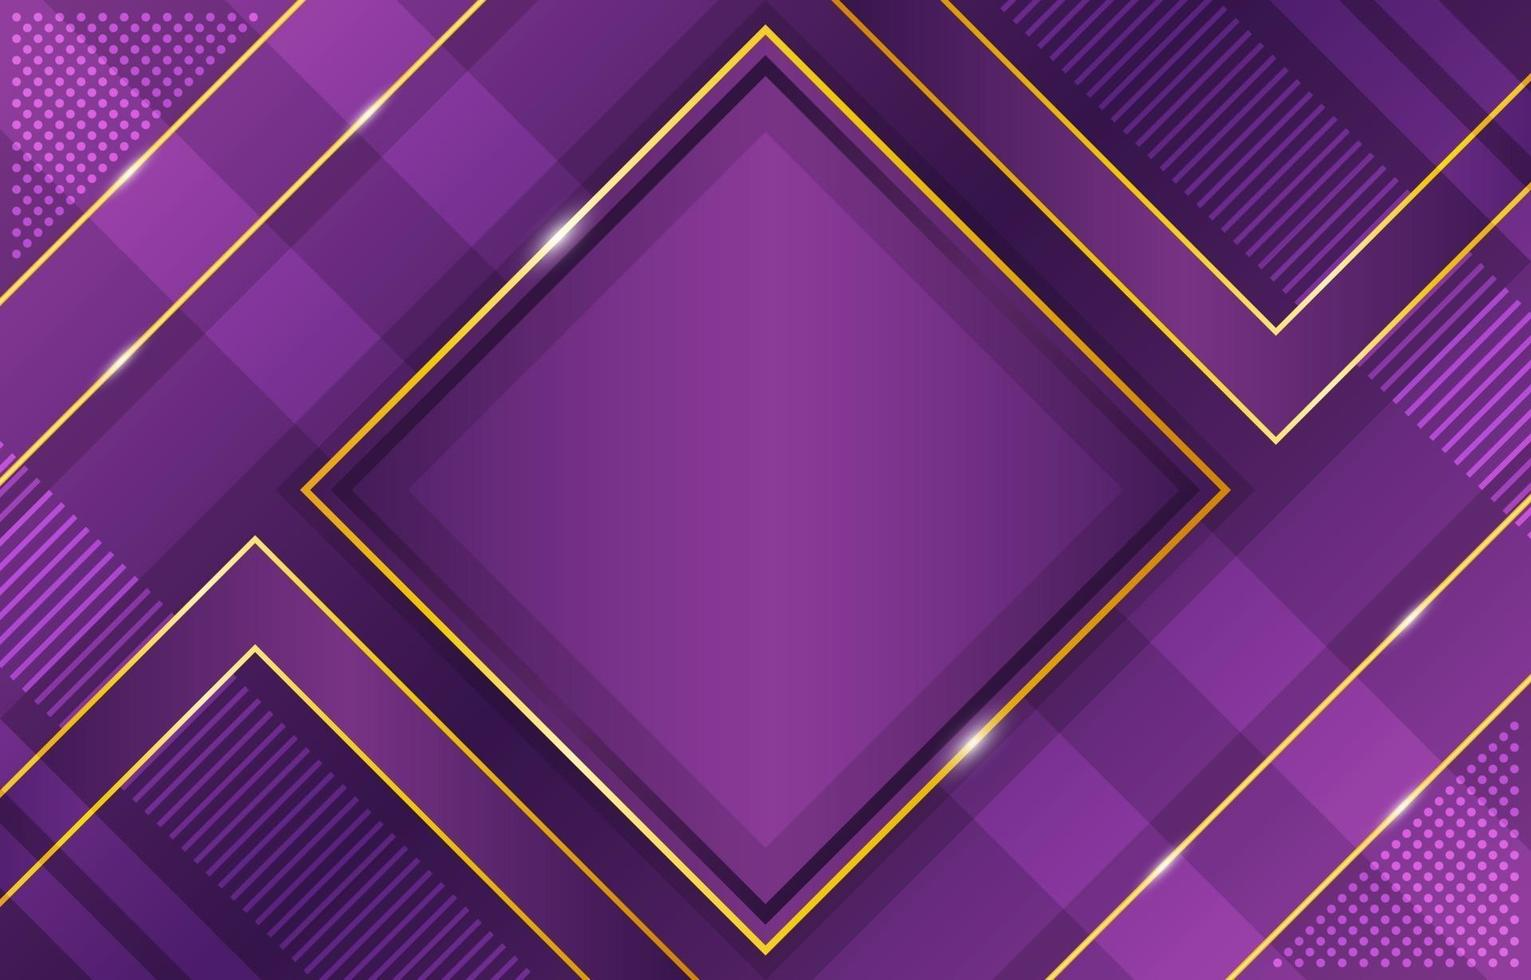 Gradient Geometric Lavender and Gold Background Composition vector